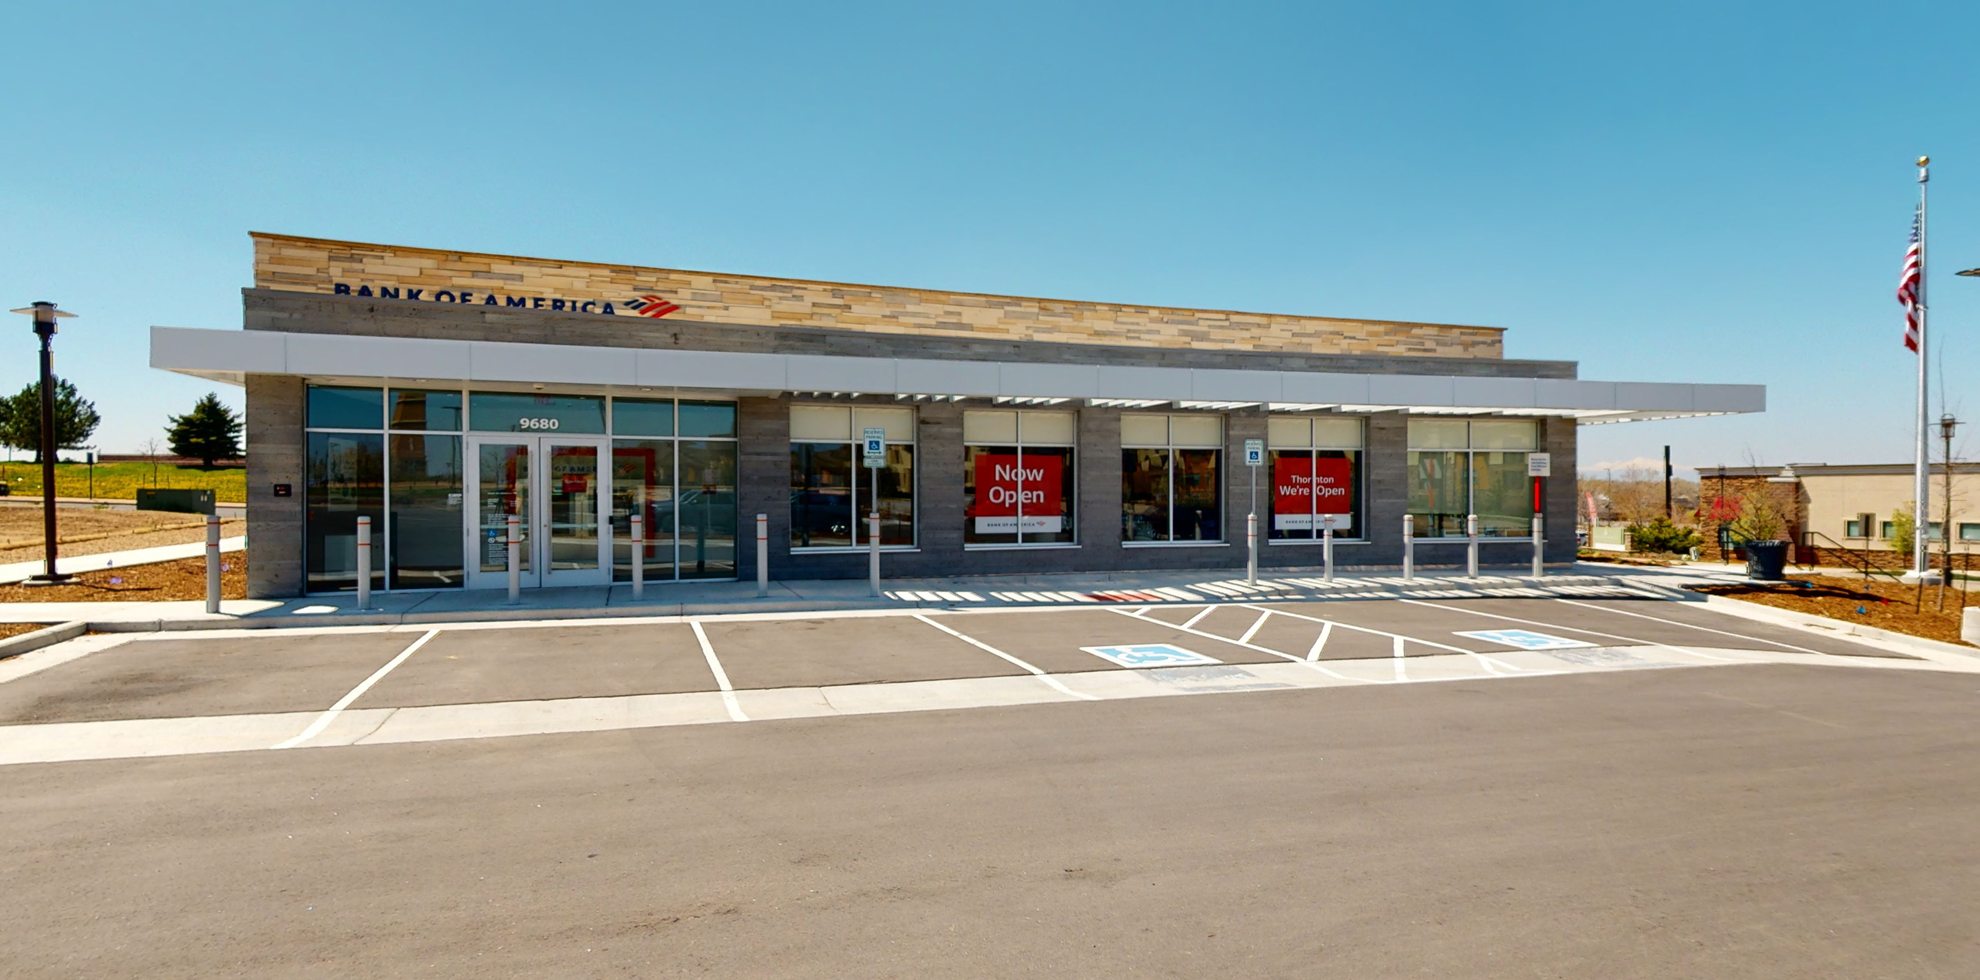 Bank of America financial center with drive-thru ATM | 9680 Grant St, Thornton, CO 80229